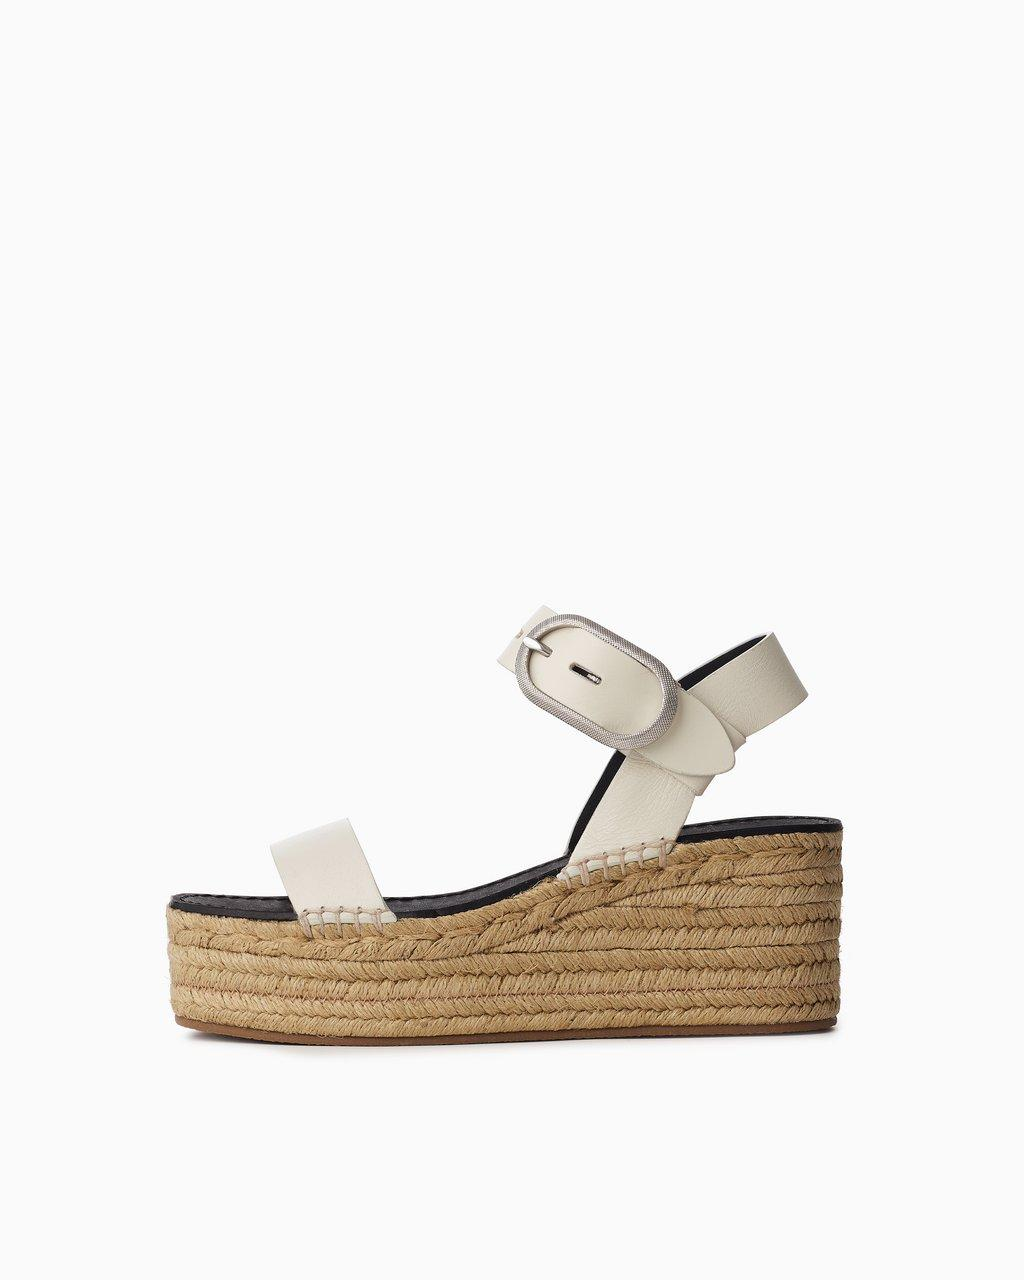 Ansley Buckle Espadrille - Leather